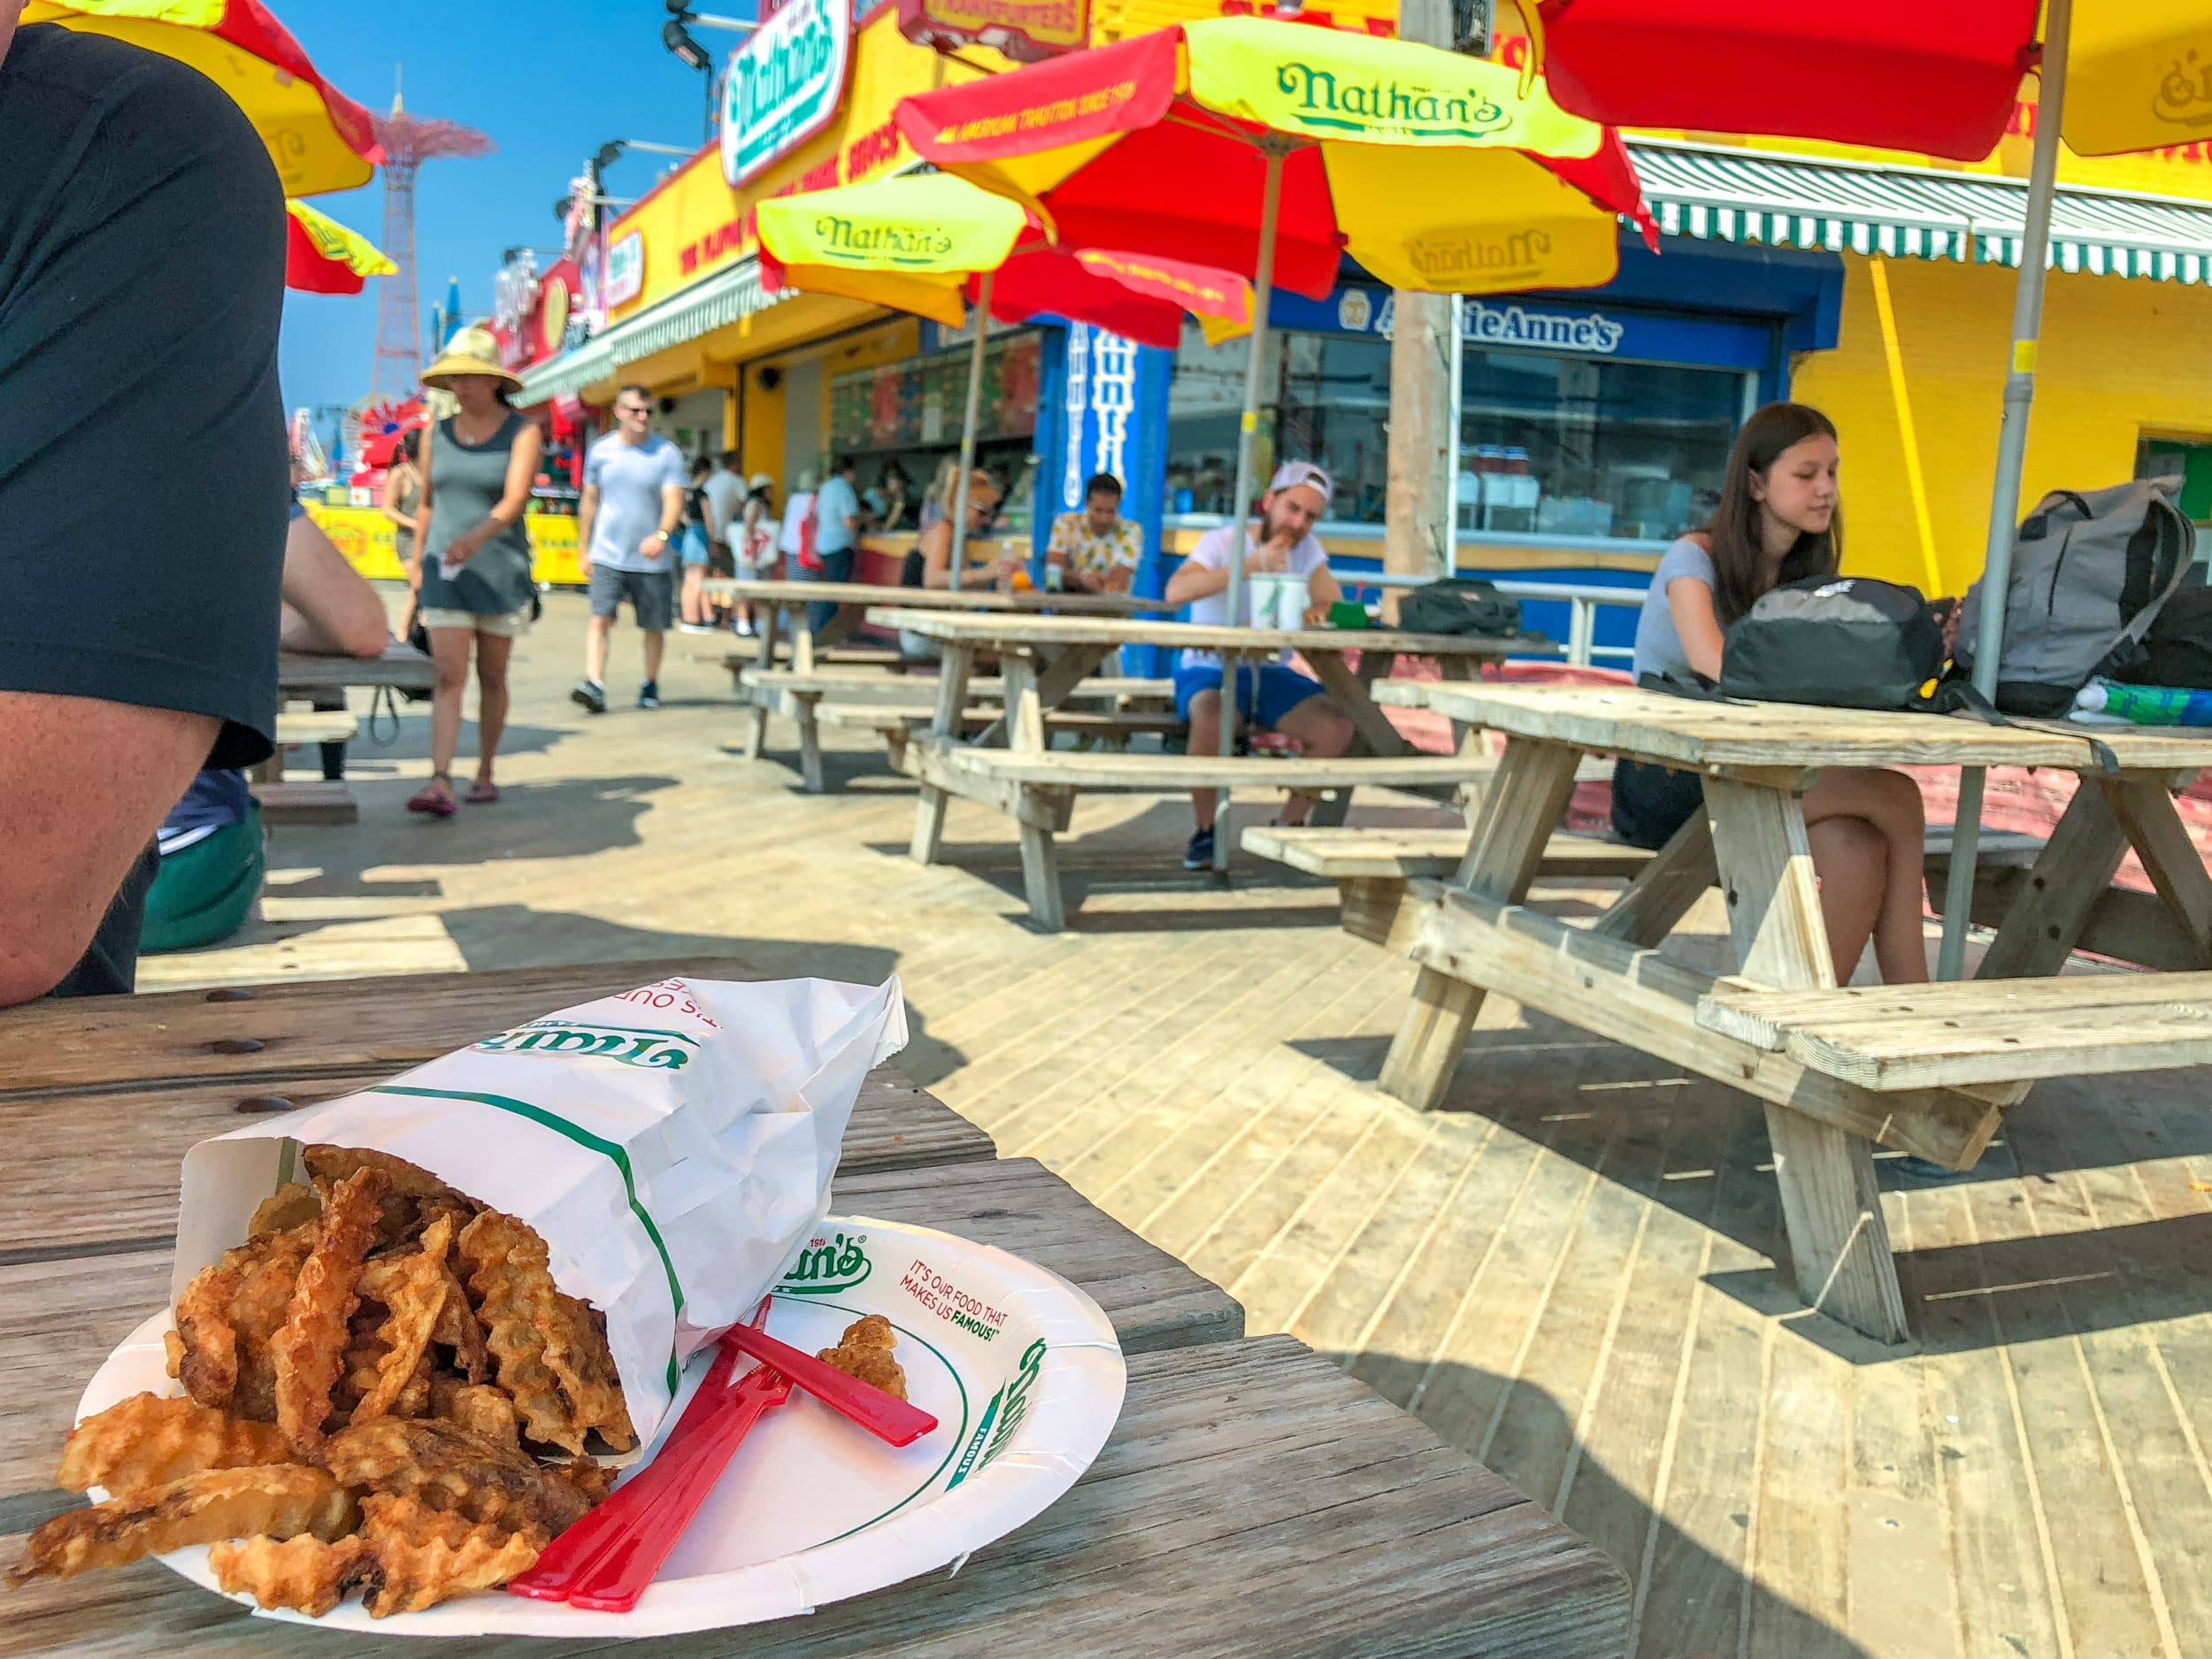 Nathan's hot dogs on the Coney Island Boardwalk